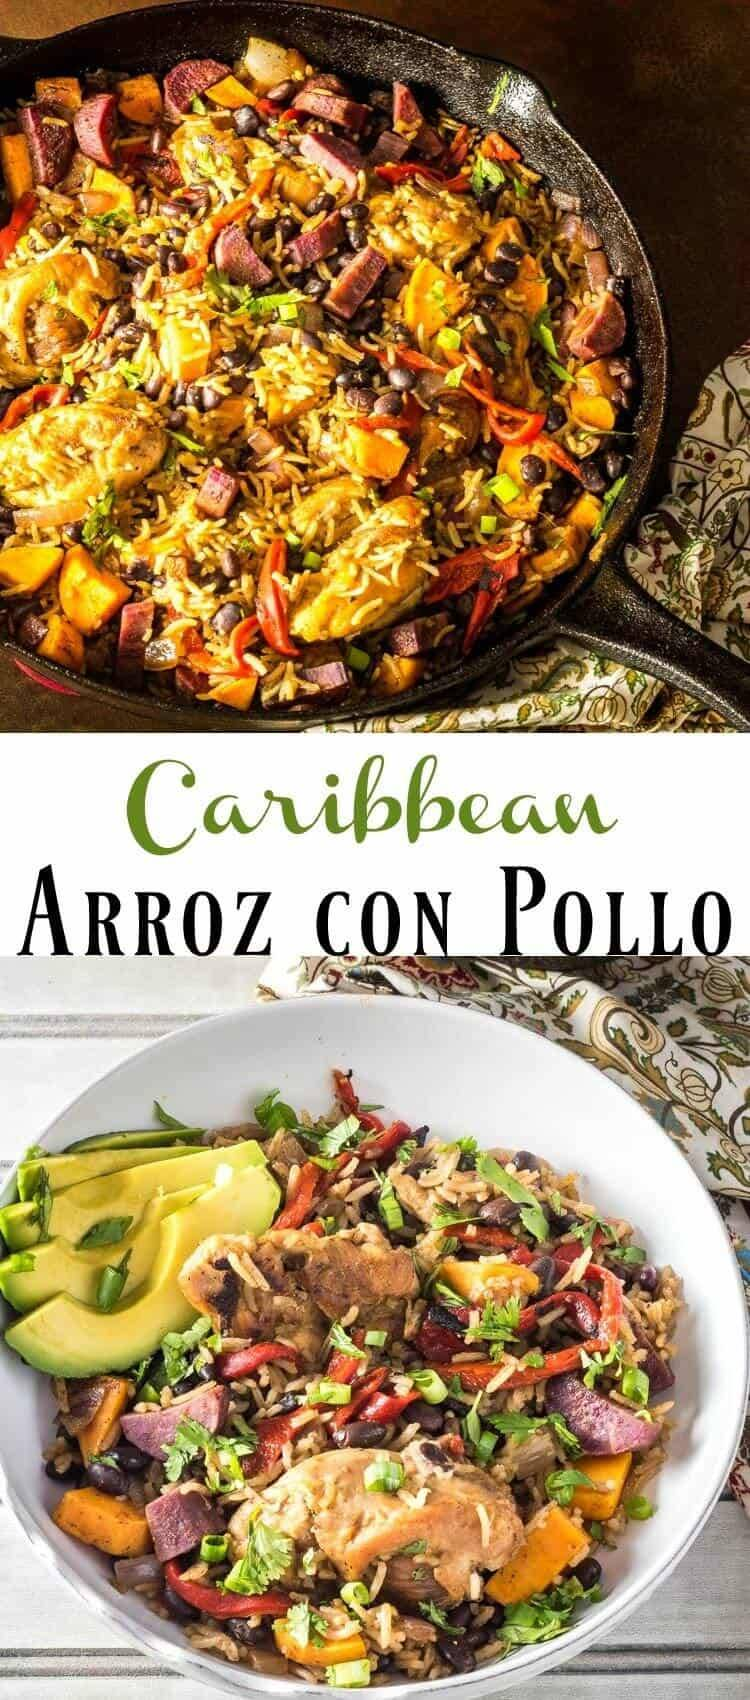 "Caribbean Arroz con Pollo Pinterest - Elevate your chicken and rice ""game"" with vibrant, Caribbean-inspired flavors... A simple one-pot meal, Carribean Arroz con Pollo gets its Caribbean kick from allspice, cumin, and red chile. With the addition of sweet potatoes and roasted red peppers, you'll have this beautiful and tasty dish on the table in about 30-40 minutes! Caribbean recipes 